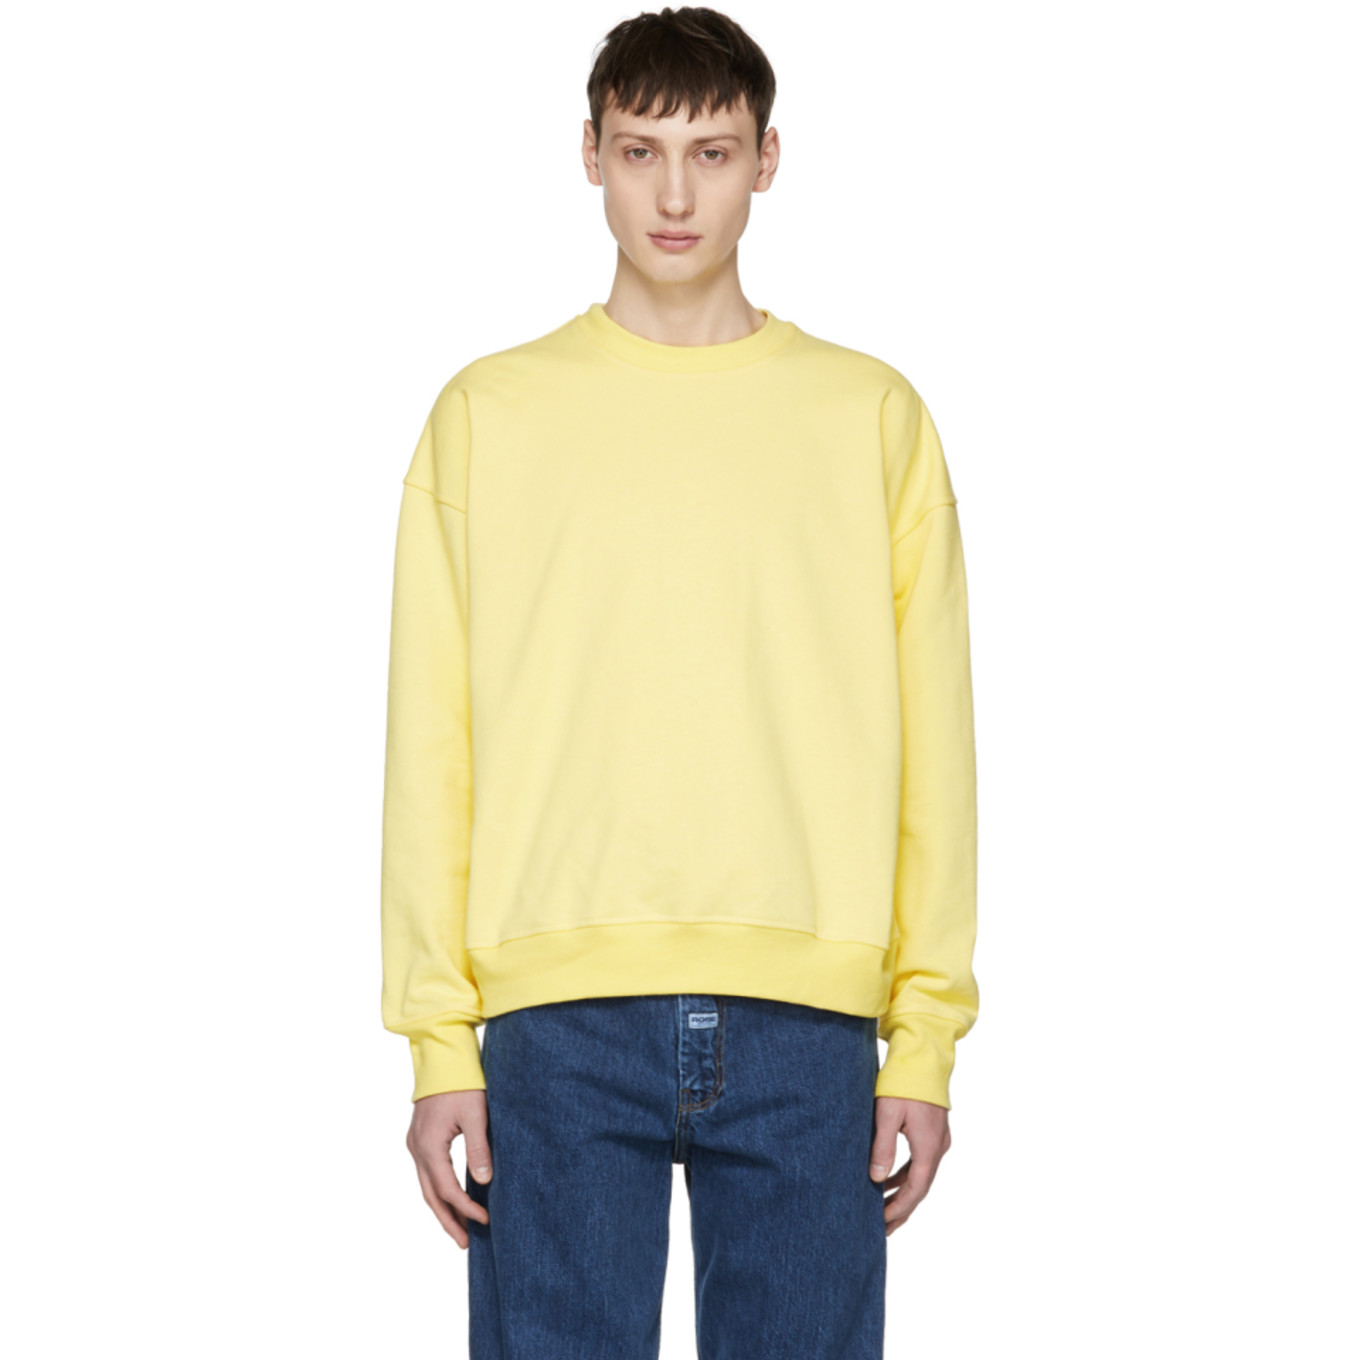 Yellow Icon Sweatshirt by Noon Goons